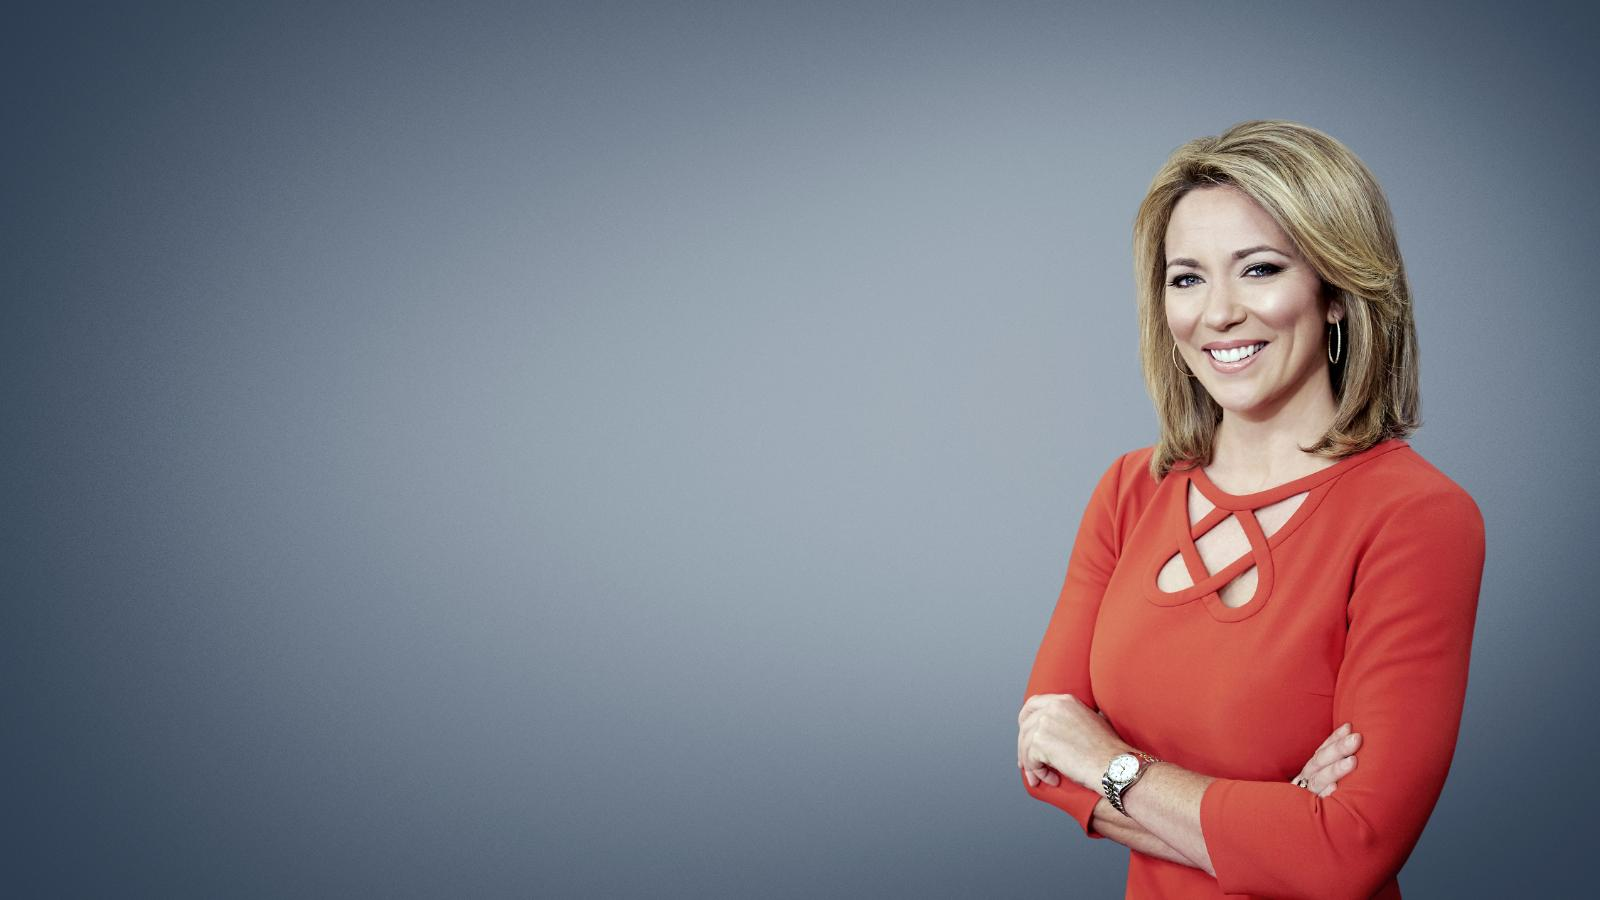 CNN Profiles - Brooke Baldwin - Anchor - CNN